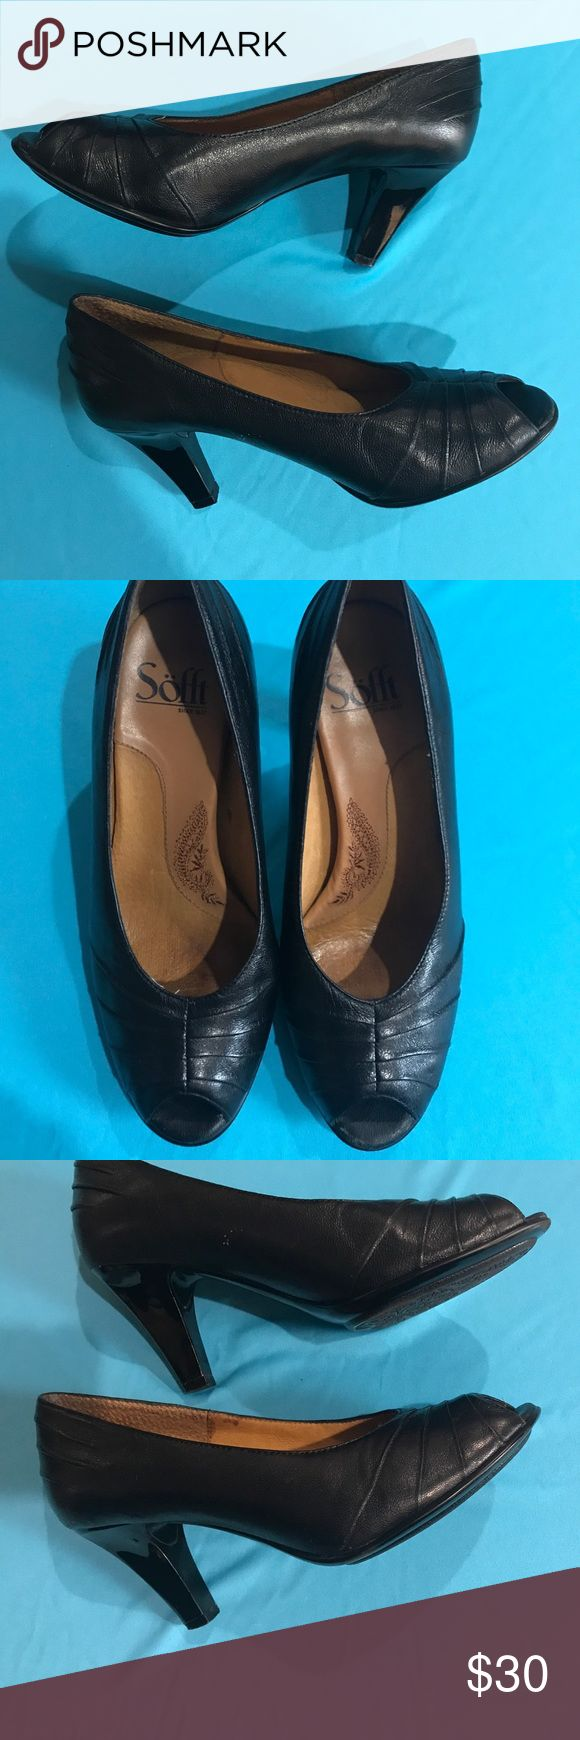 "🖤Sofft Women's Shoes—Size 6 1/2 M—Leather🖤 These Sofft brand ladies peep toe pumps are black leather upper with manmade balance—size 6 1/2 M-3"" heel, very nice condition except inside footbed has slight discoloration from wearing, check out bottom soles🖤🖤🖤 Sofft Shoes Heels"